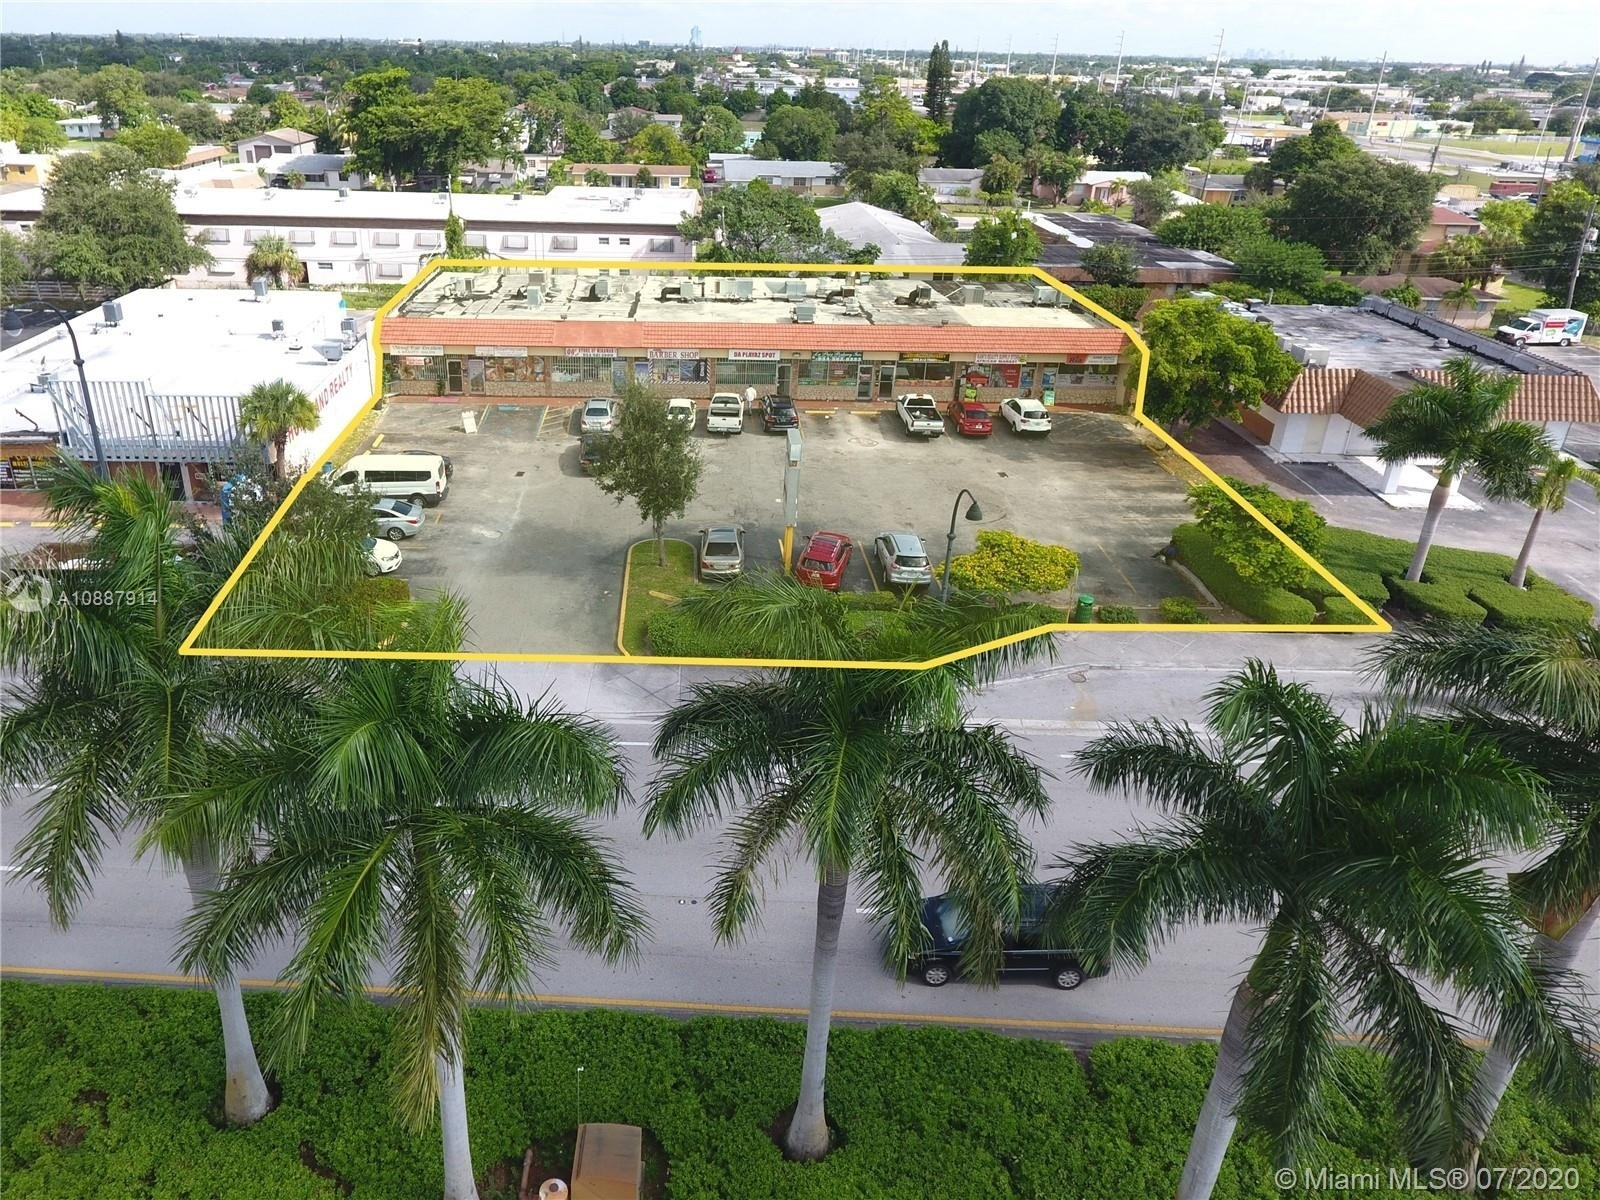 Commercial / Office for Sale at Miramar Isles, Miramar, FL 33023